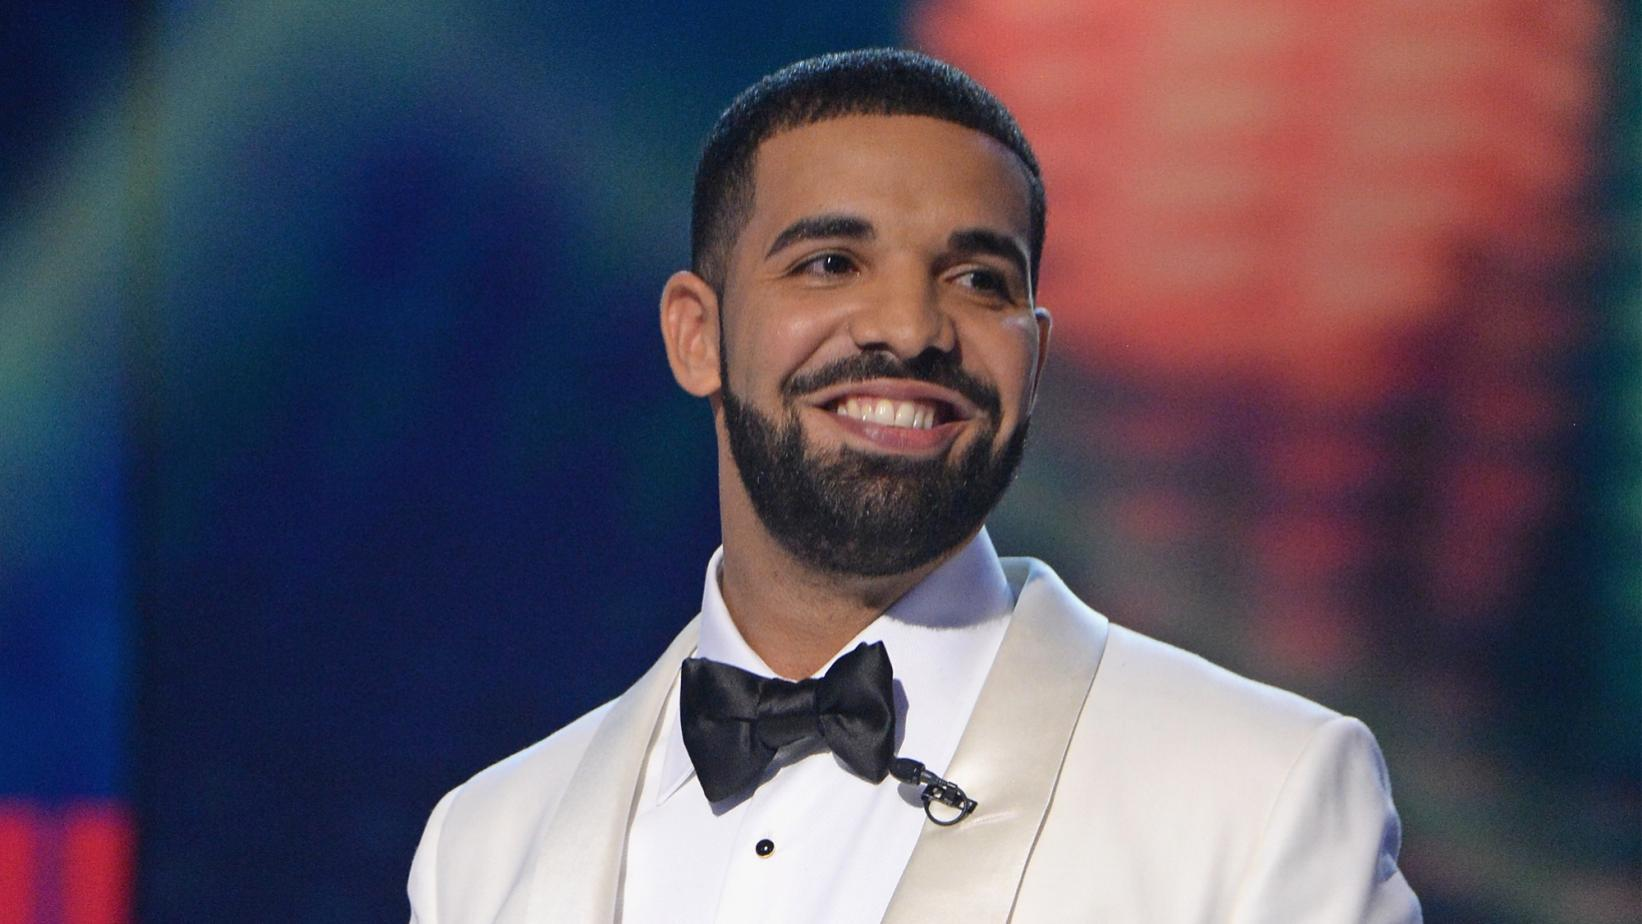 Drake Shares A Low-Key Photo Of His Son, Adonis